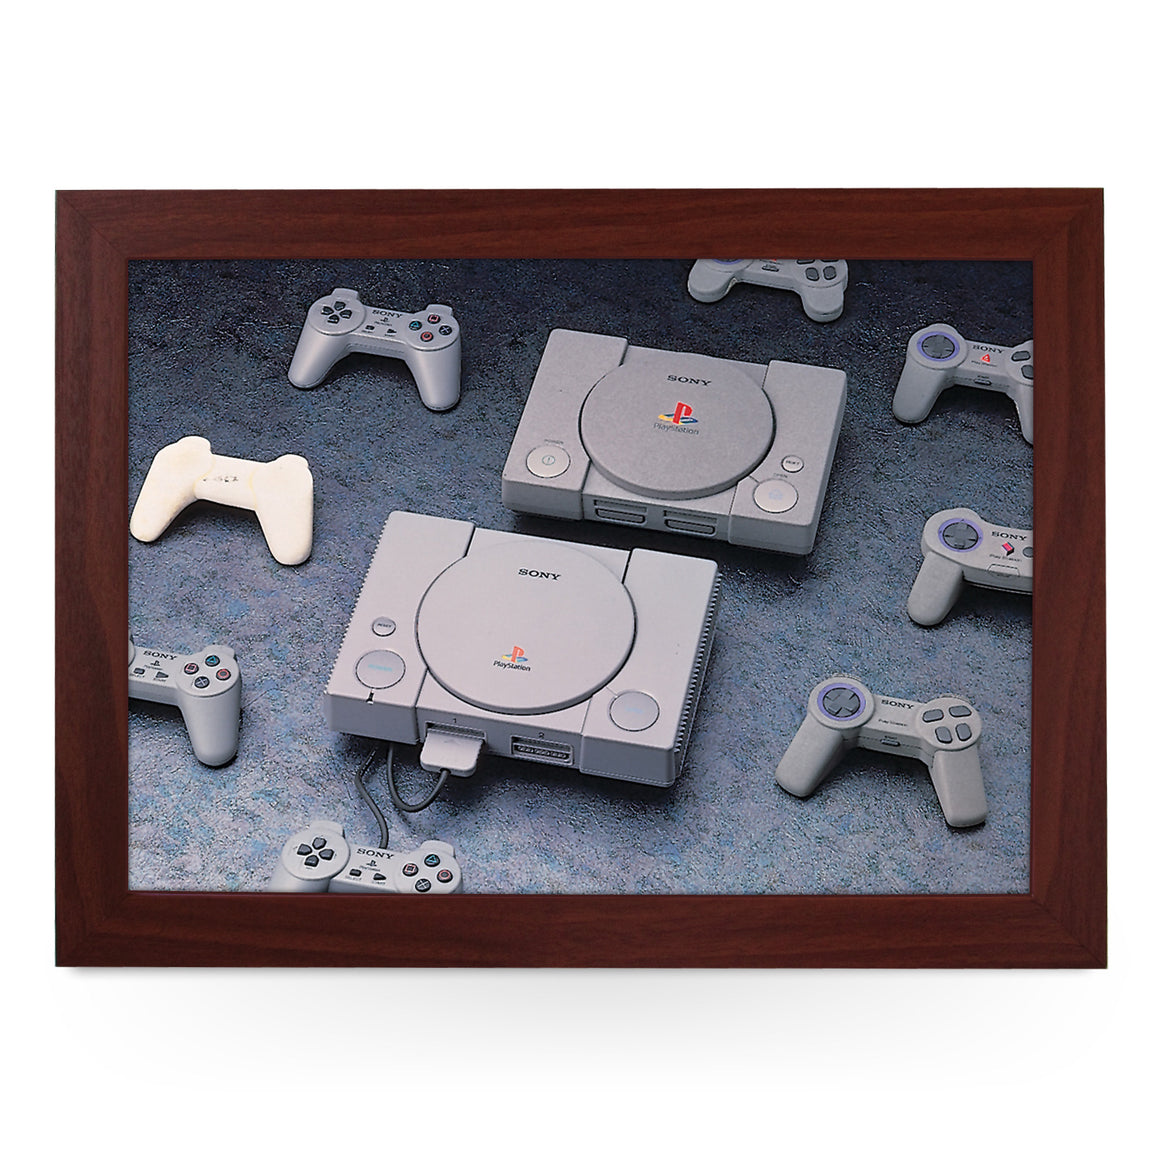 PlayStation 1 Prototypes Lap Tray - L0202